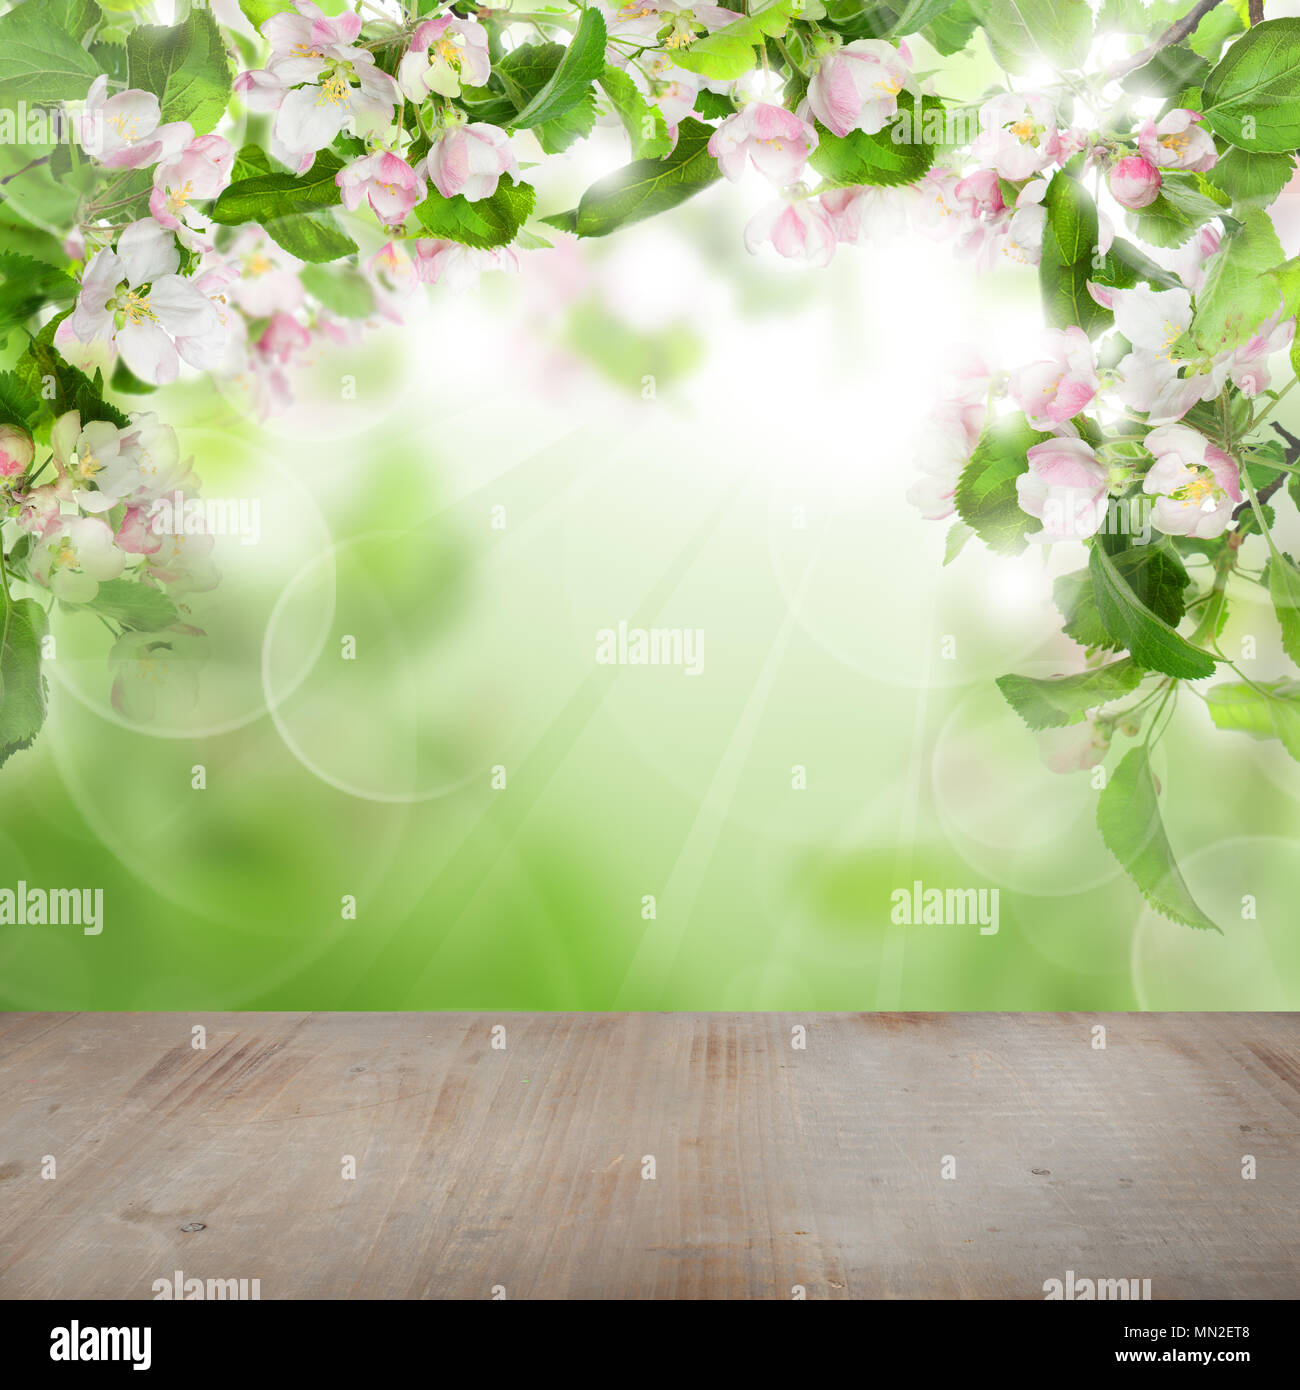 Spring Green Leaves And Flowers Background With Plants: Spring Apple Flowers, Green Leaves, Abstract Bokeh Light